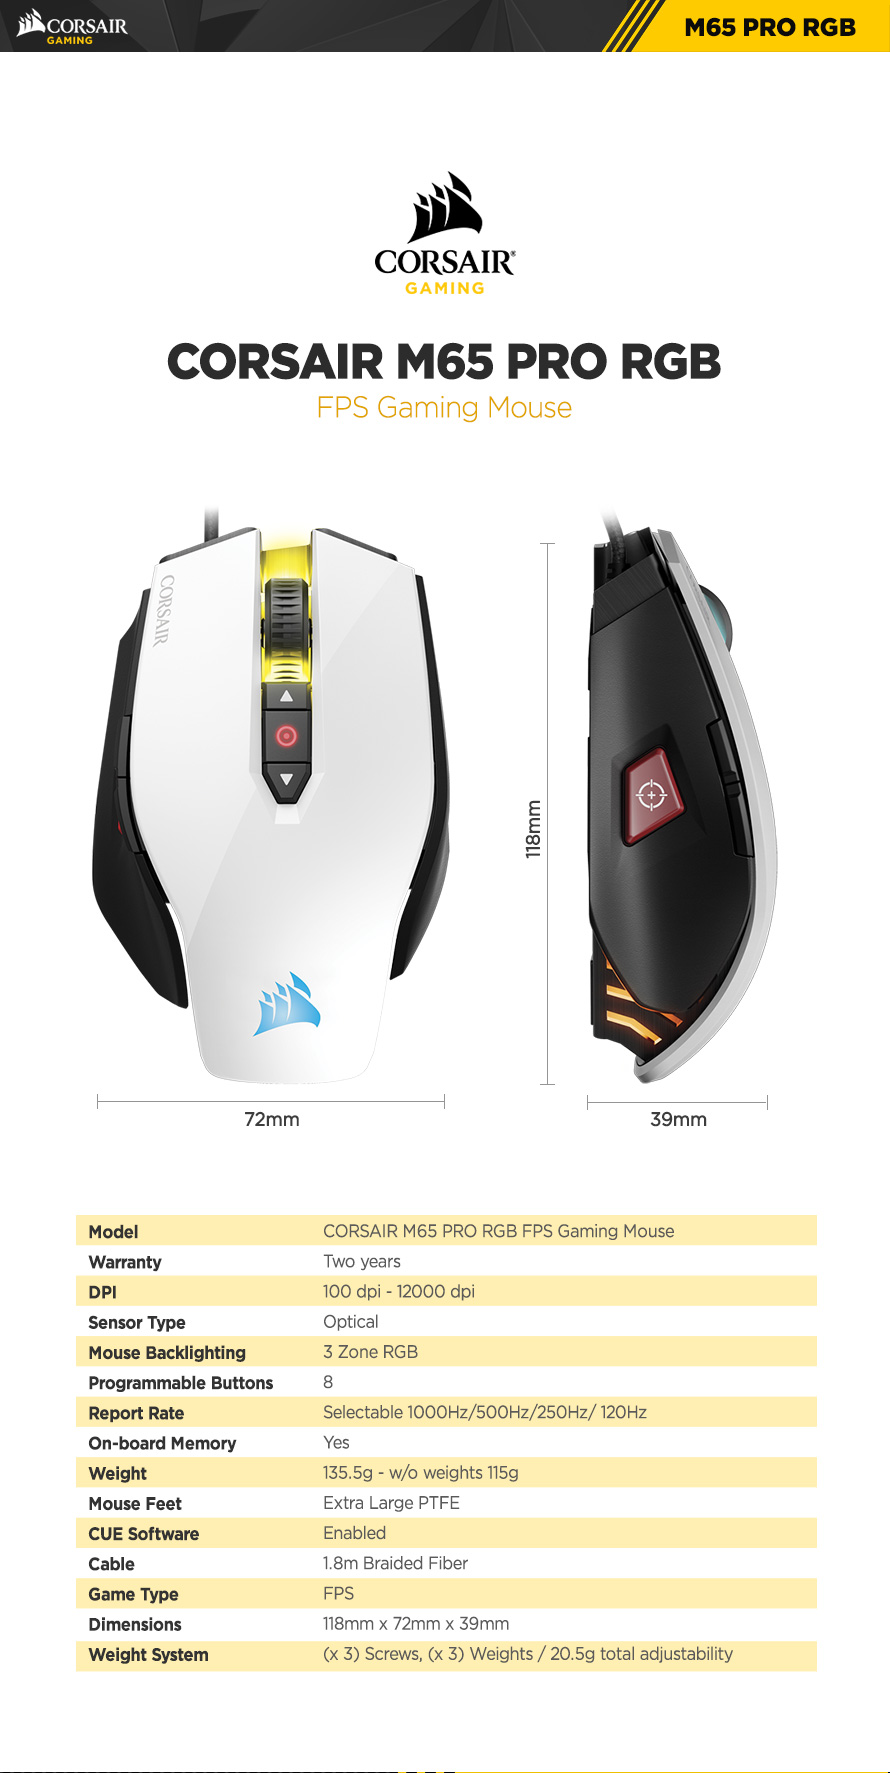 corsair m65 pro rgb fps gaming mouse Warranty Two years DPI 100 dpi - 12000 dpi Sensor Type Optical Mouse Backlighting 3 Zone RGB Programmable Buttons 8 Report Rate Selectable 1000Hz/500Hz/250Hz/125hz On-board Memory Yes Weight 135.5g - w/o weights 115g Mouse Feet Extra Large PTFE CUE Software Enabled Cable 1.8m Braided Fiber Game Type FPS  Dimensions 118mm x 72mm x 39mm Weight System (x 3) Screws, (x 3) Weights 20.5g total adjustability